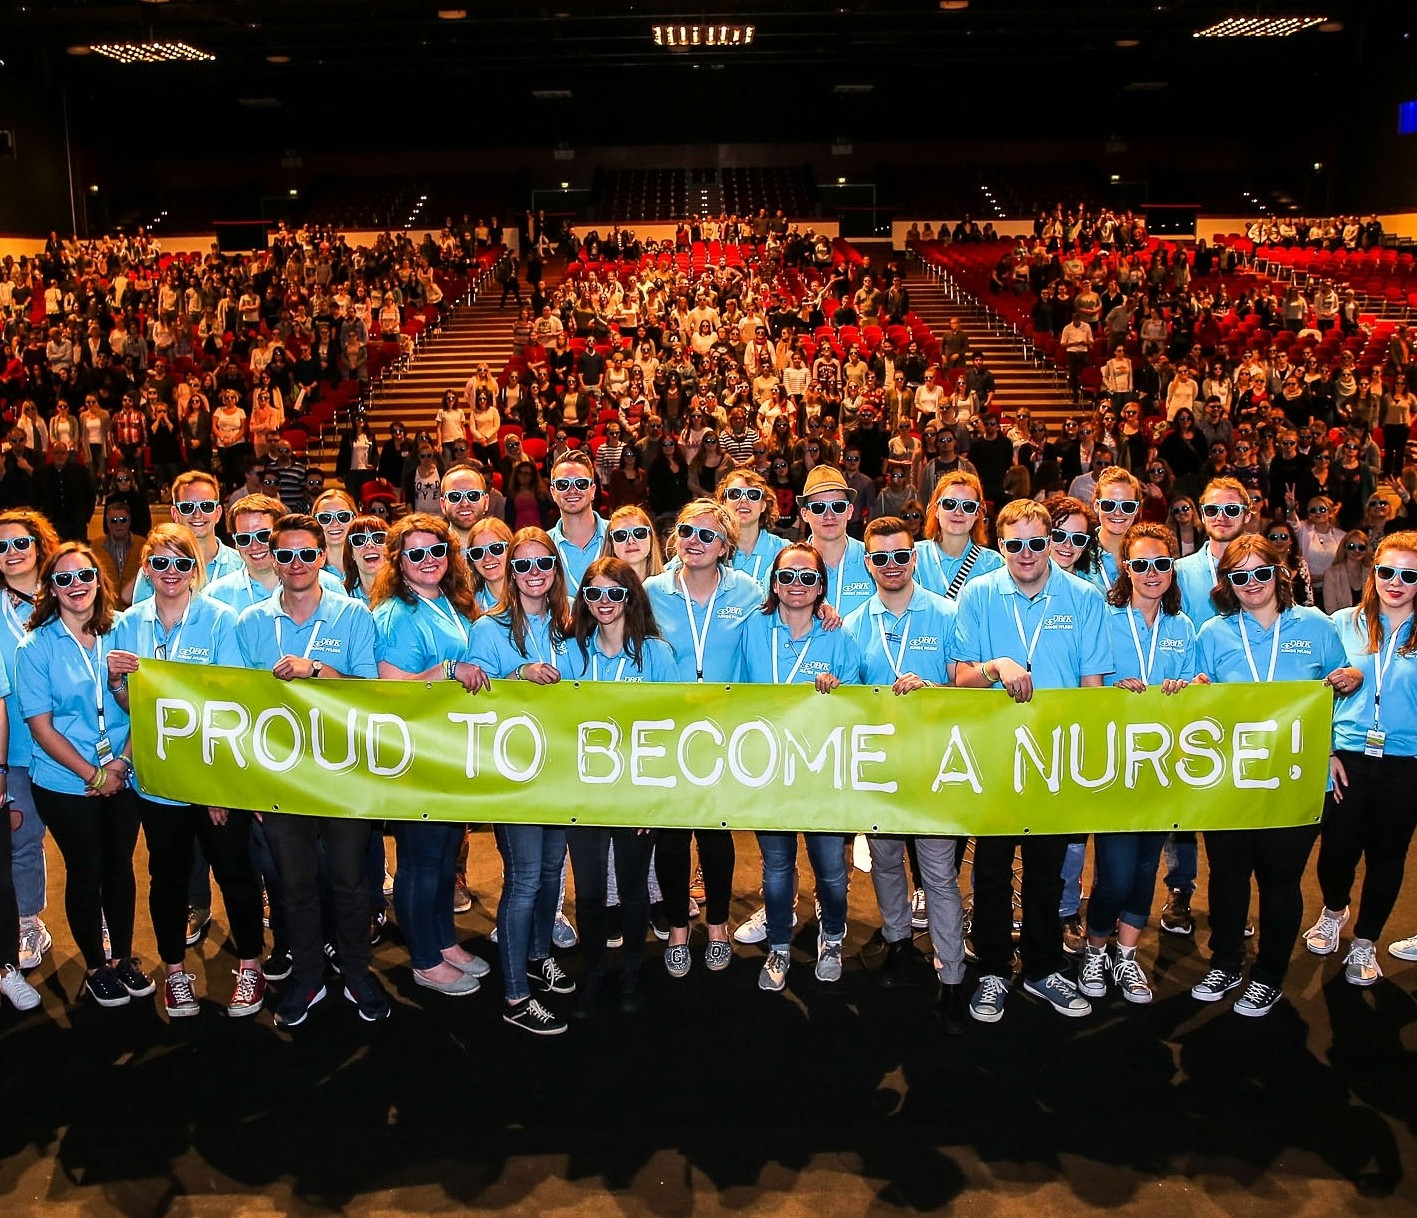 Junge Pflege Kongress 2018 - PROUD TO BECOME A NURSE